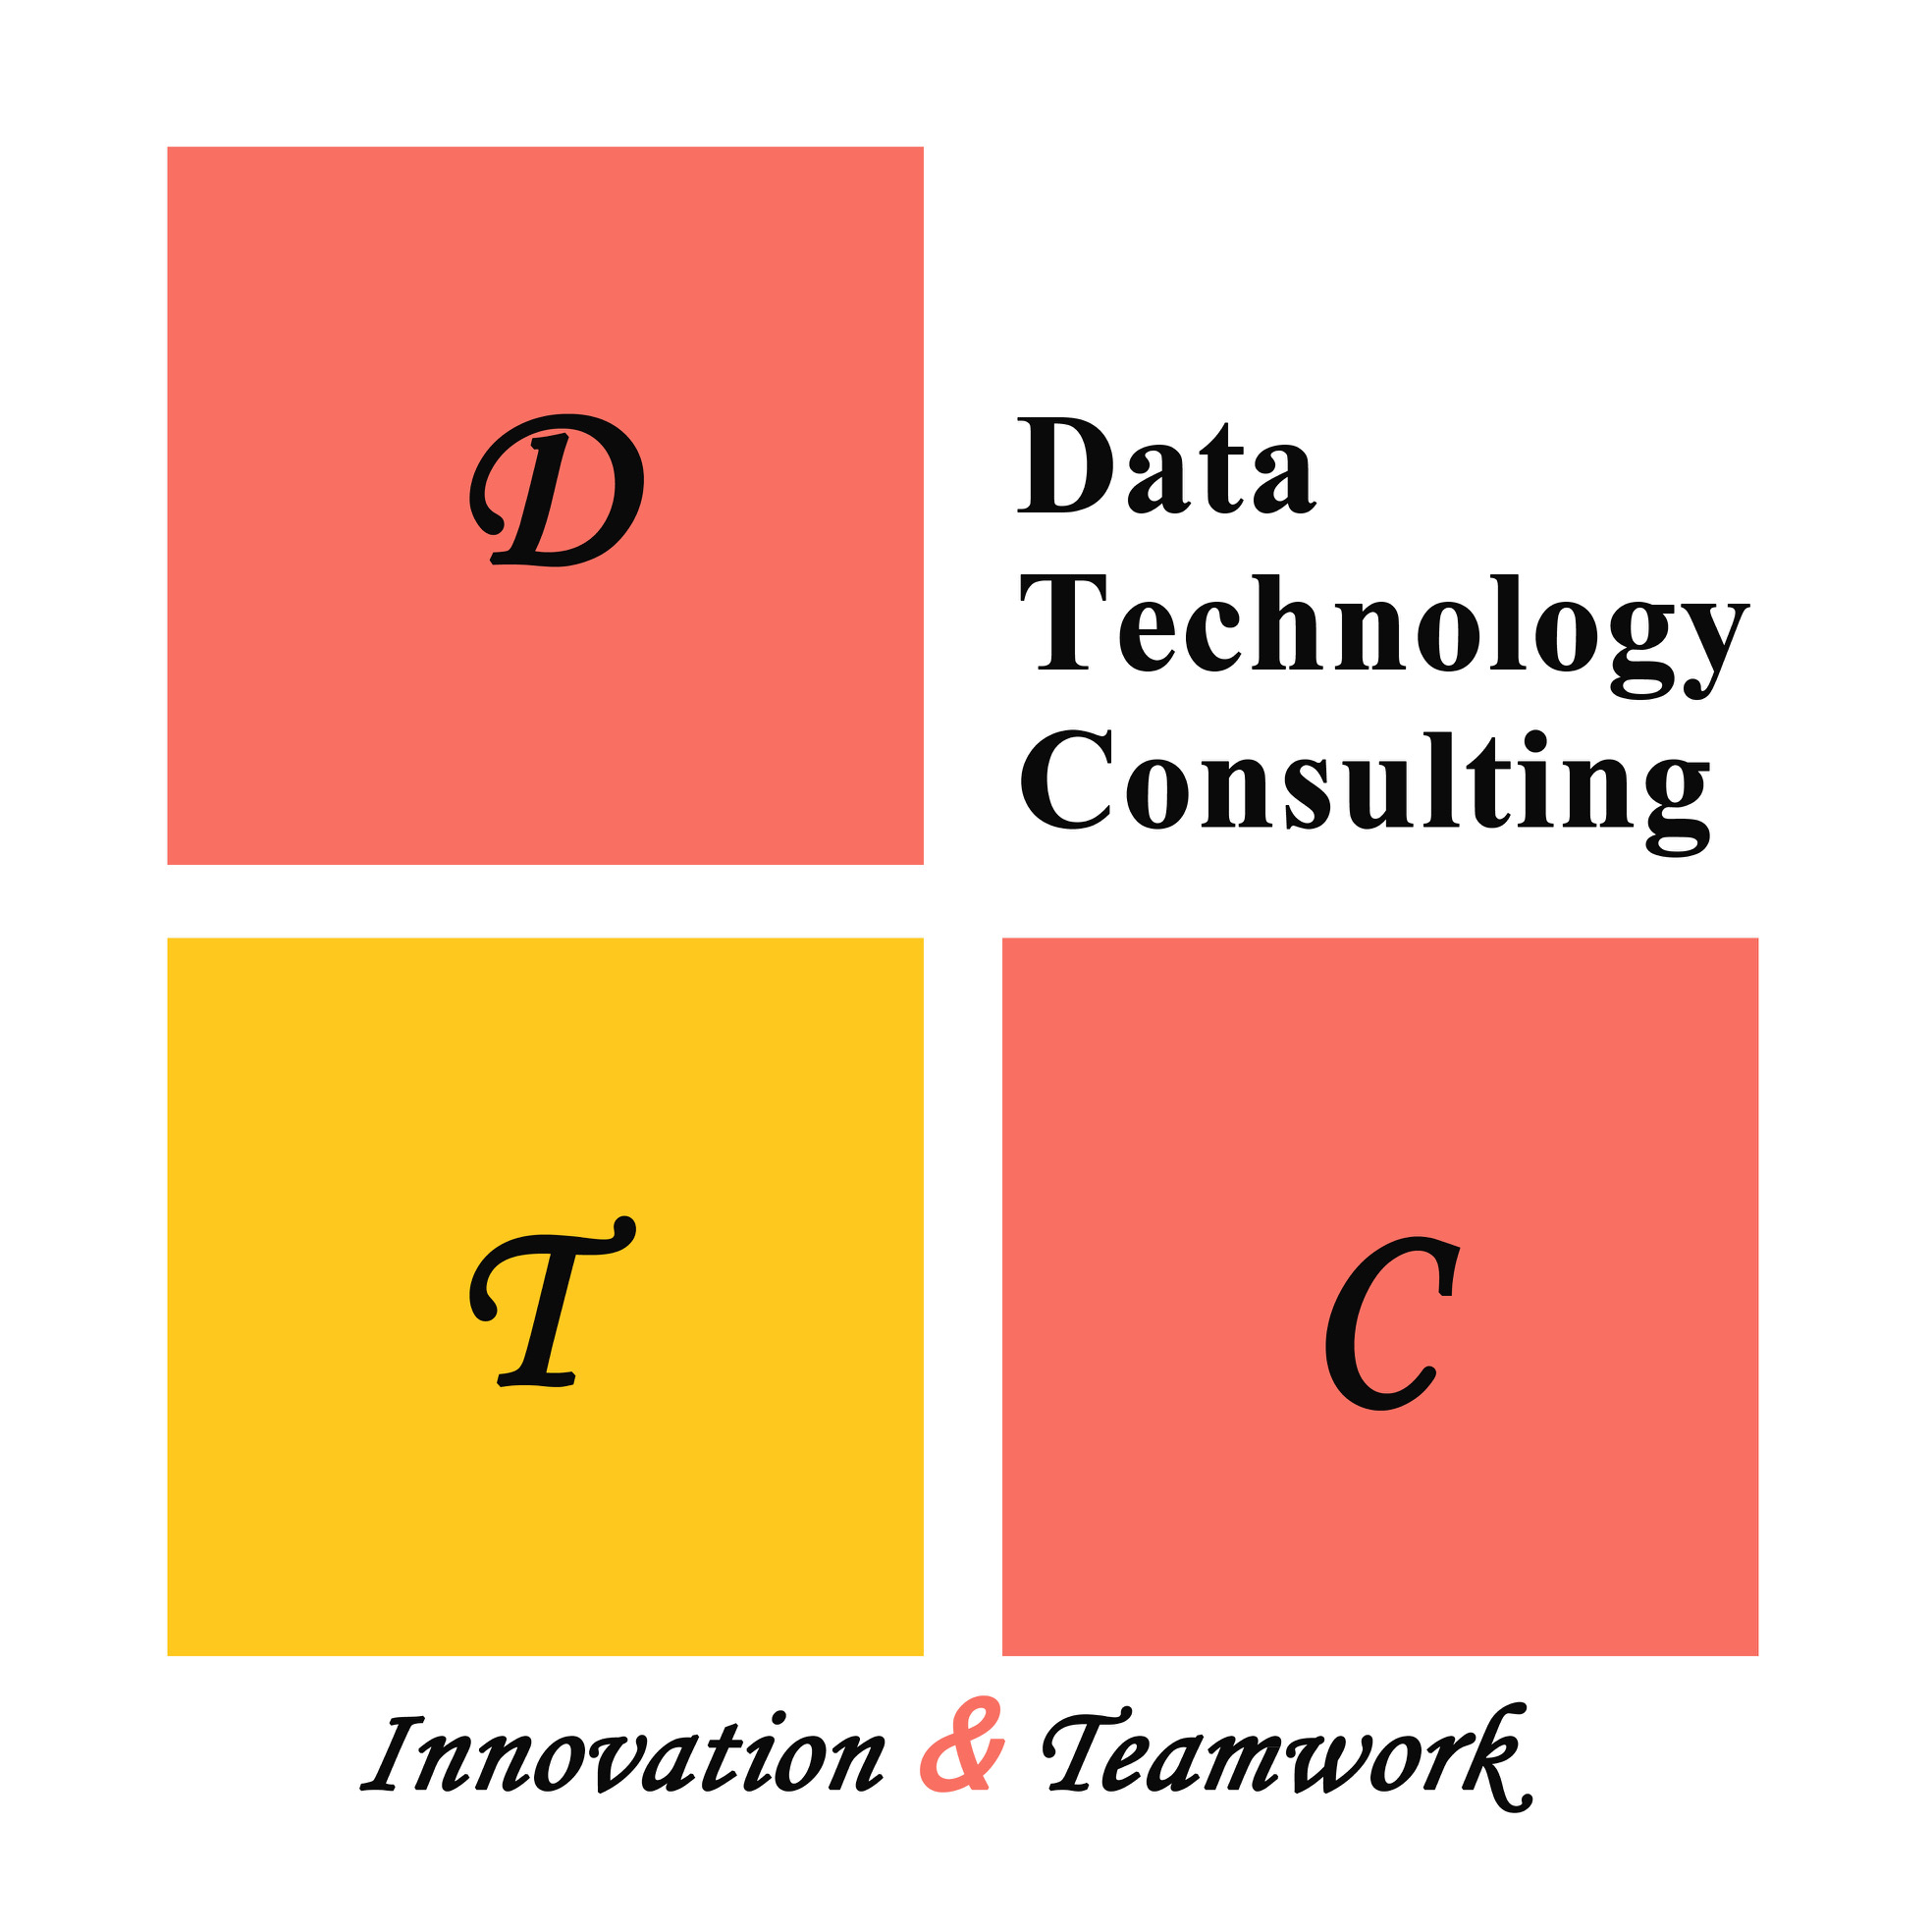 DTC - Data Technology Consulting